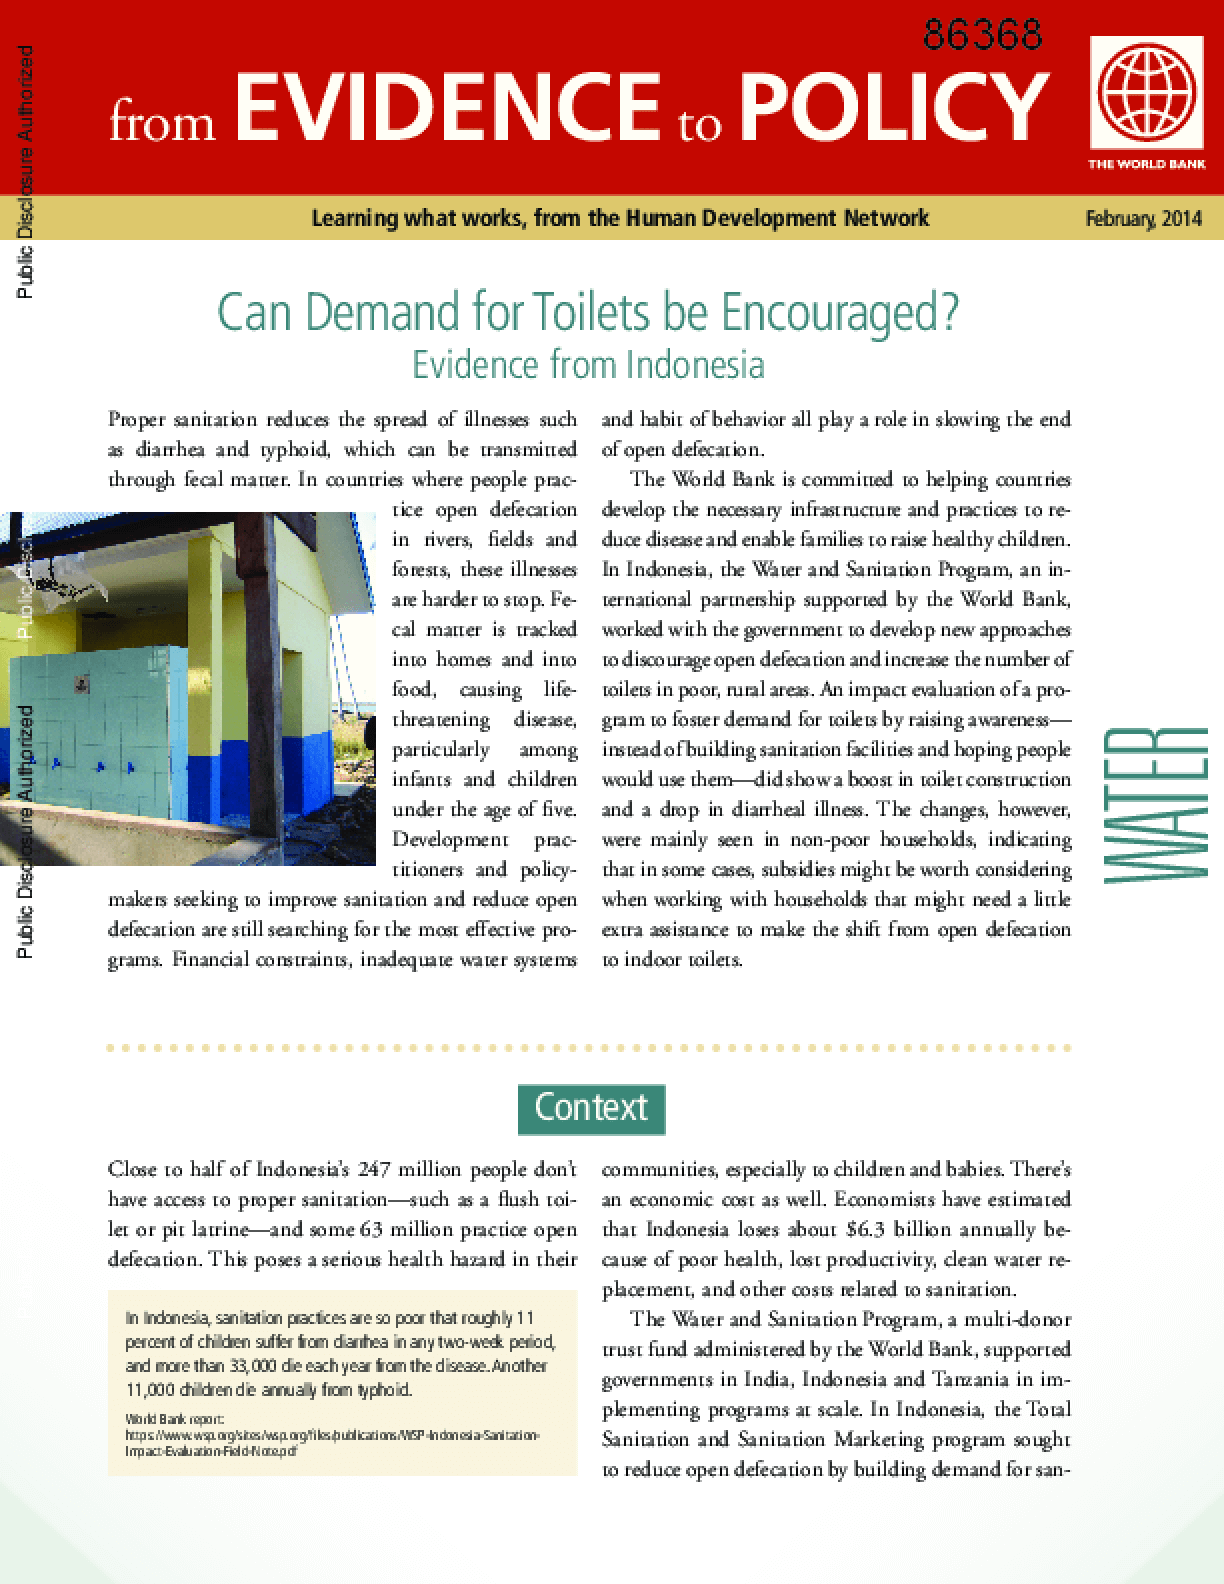 Can Demand for Toilets Be Encouraged? Evidence from Indonesia